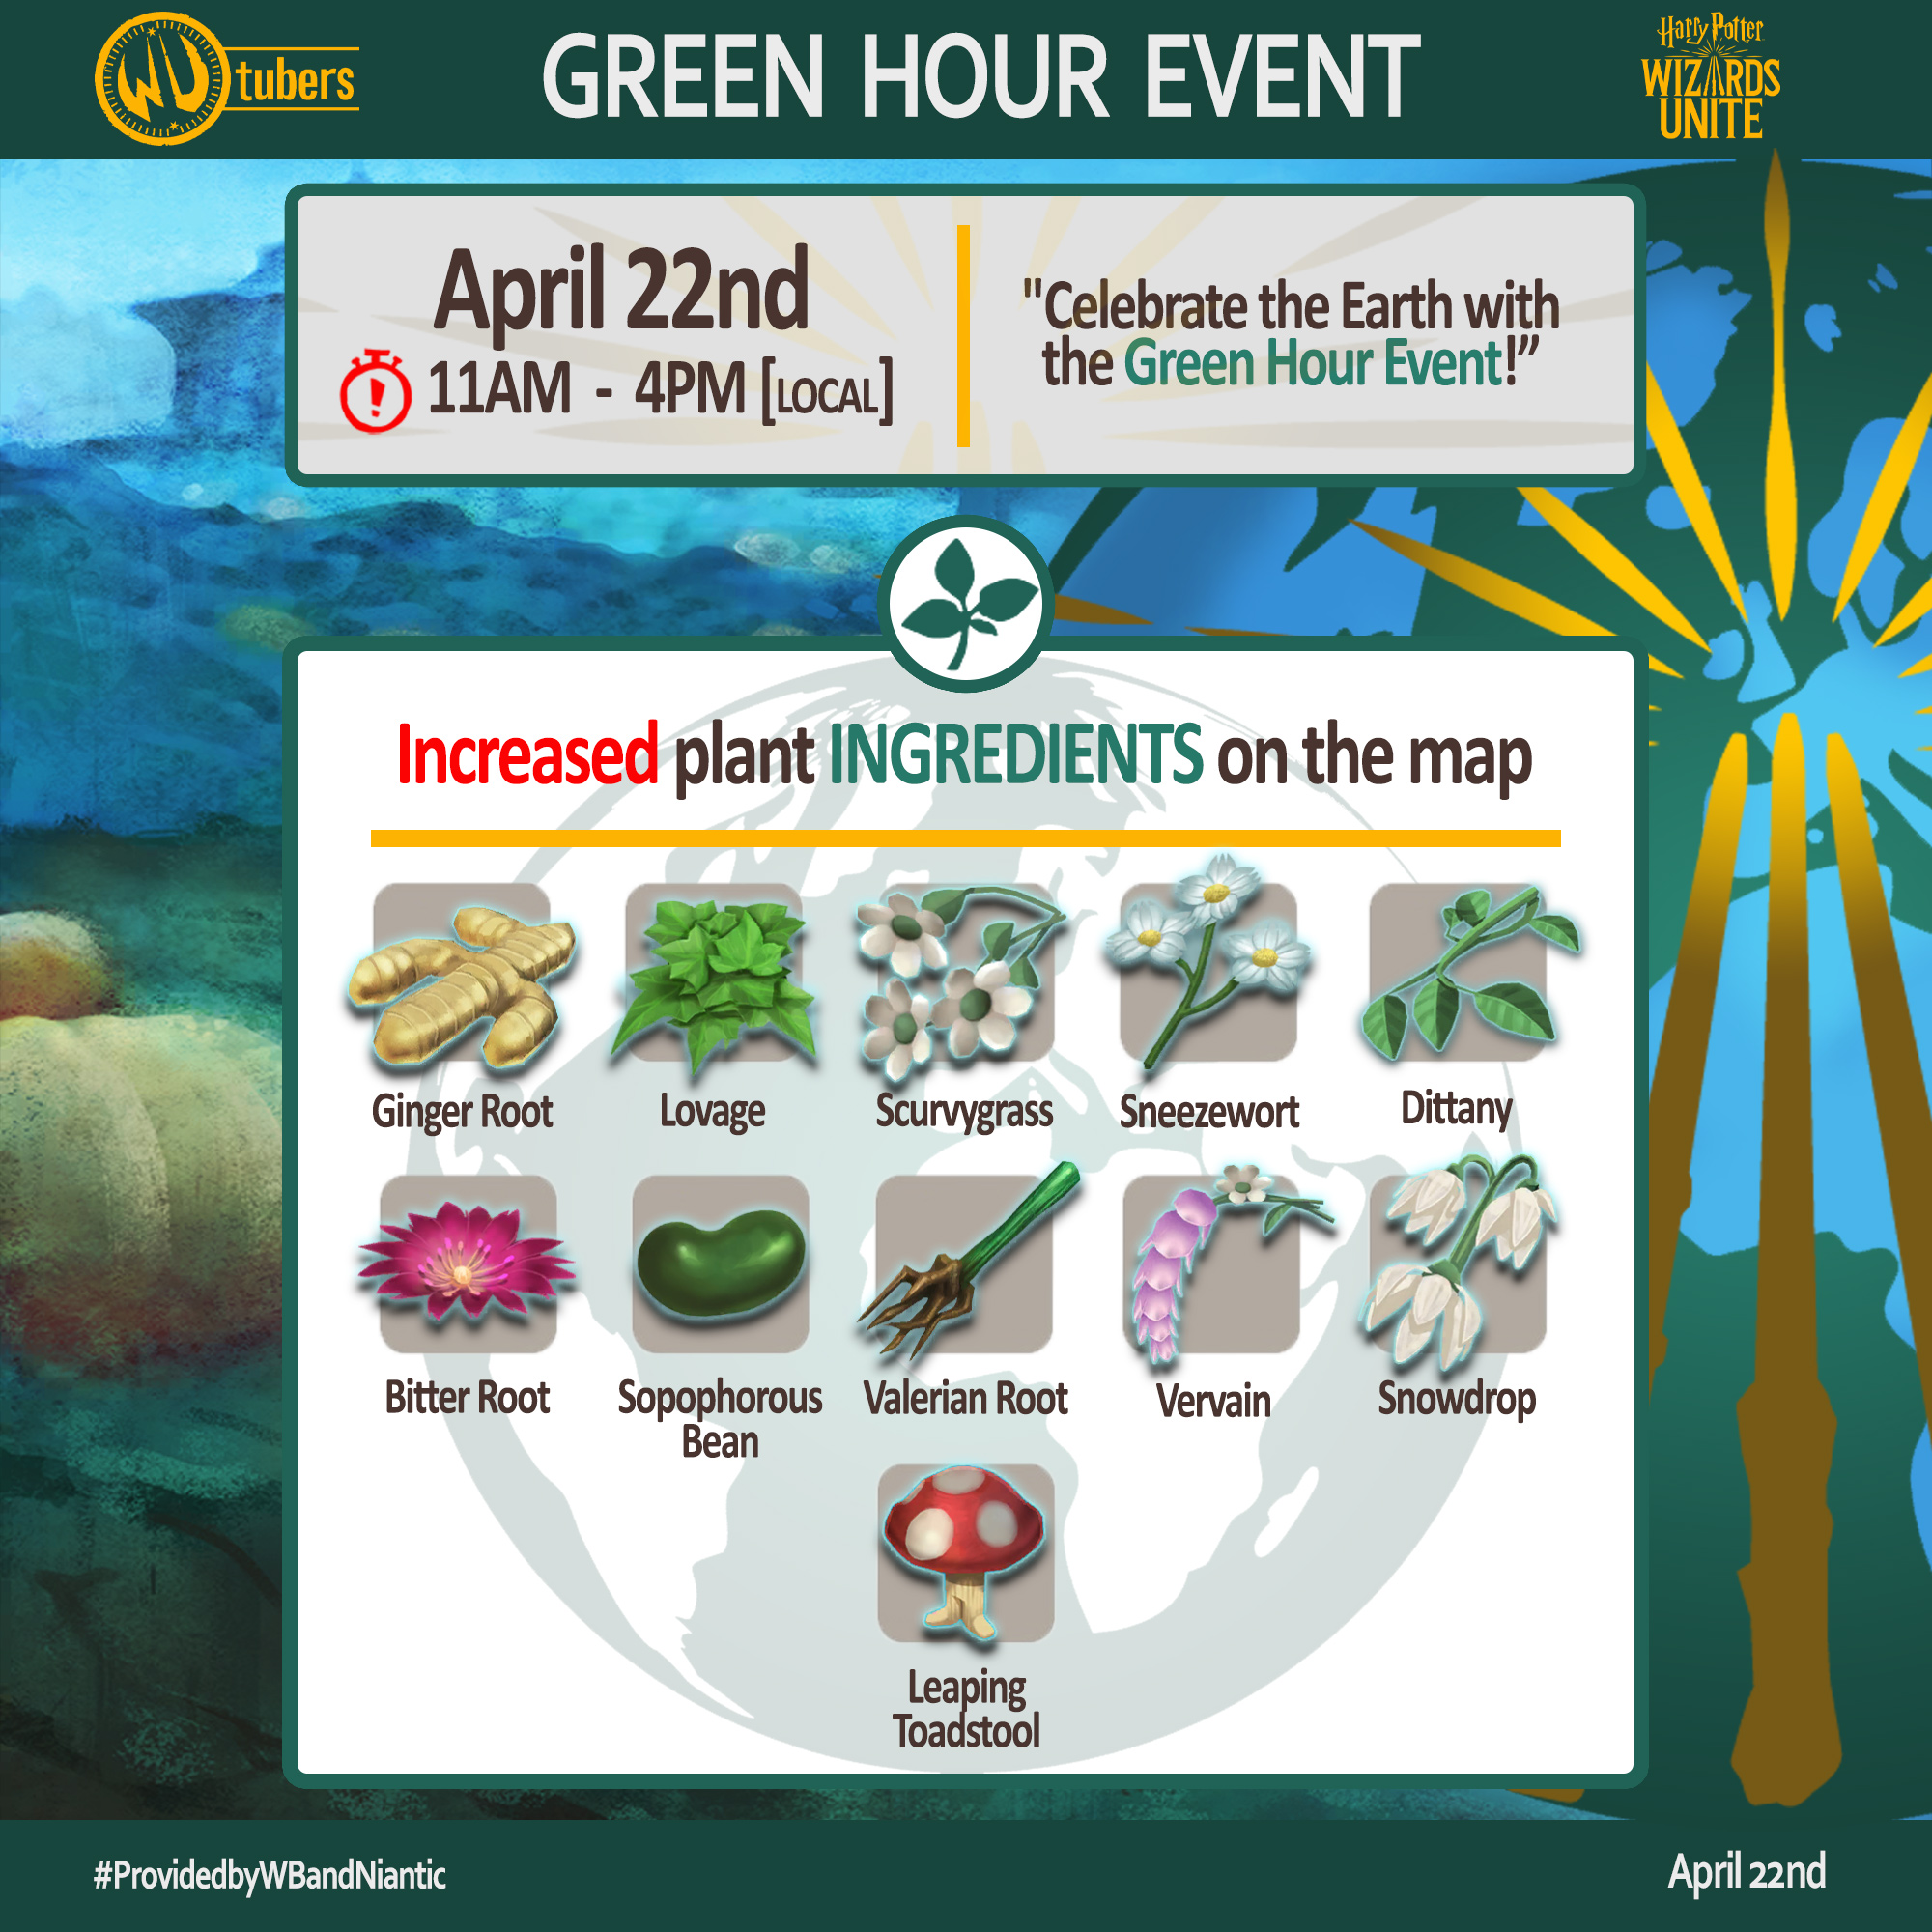 Green_Hour_Event_Infographic-1.jpg